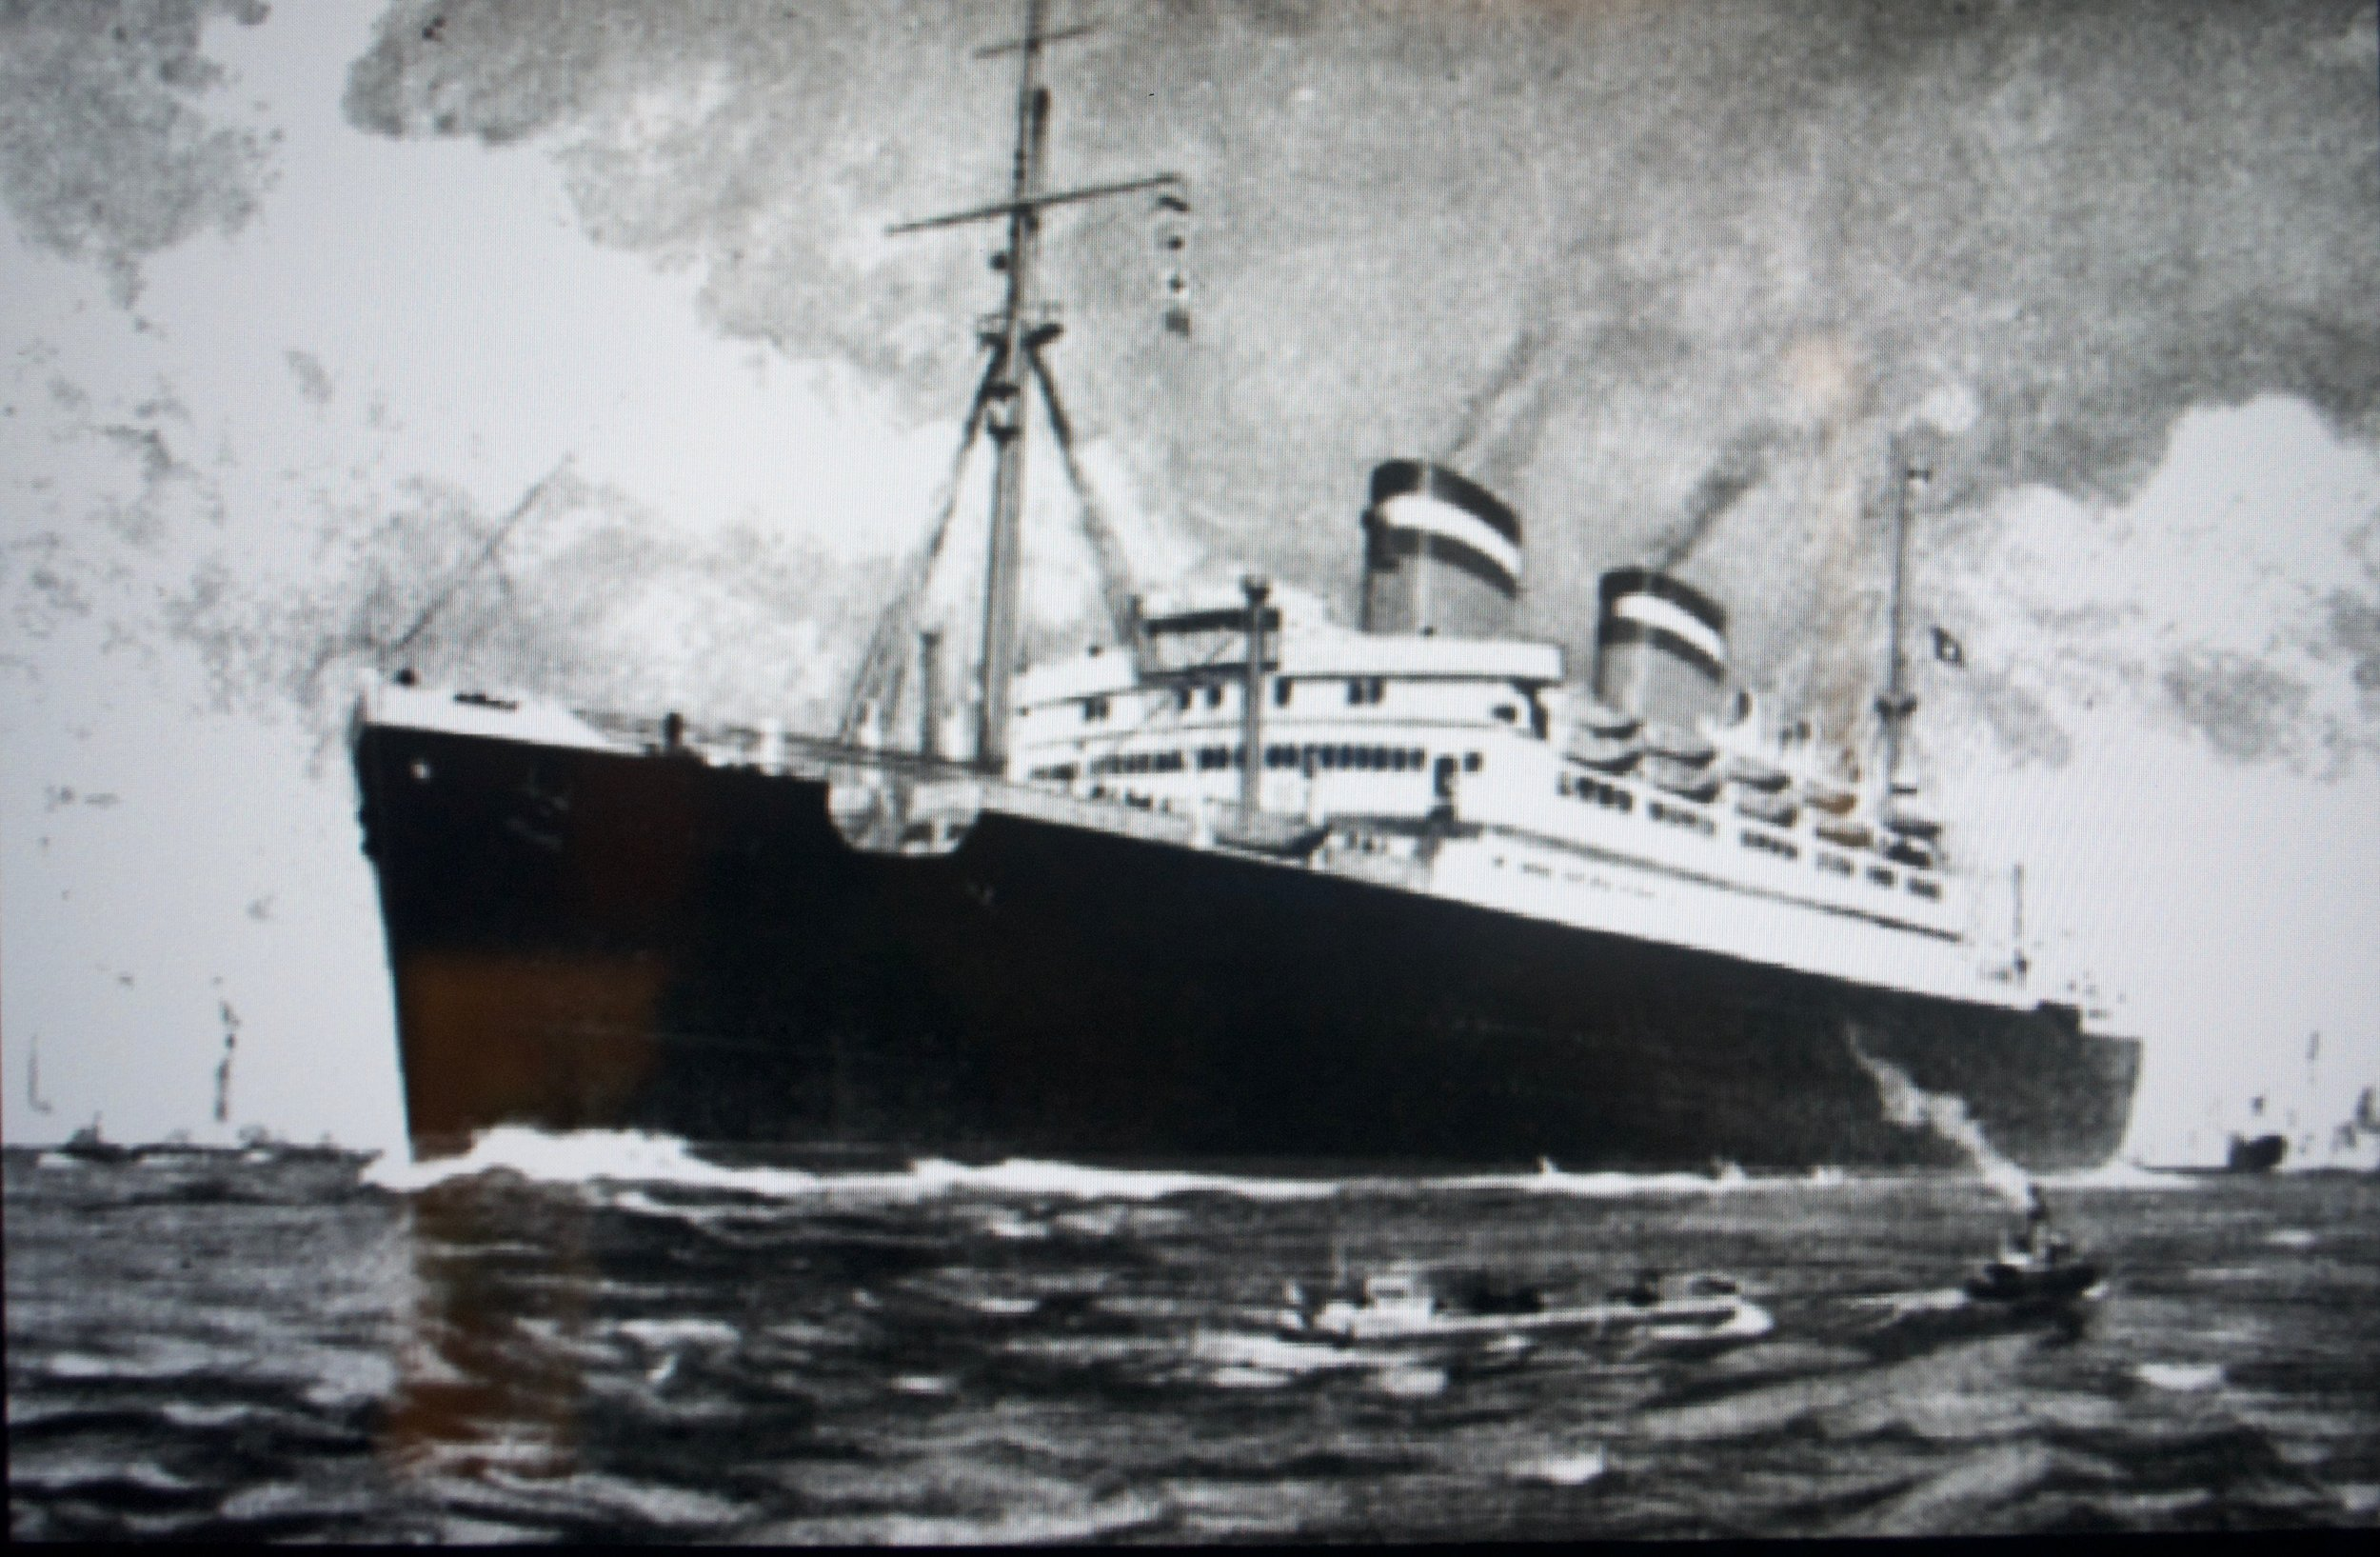 Lloyd Triestino passenger ship bringing Jewish refugees from Trieste to Shanghai in the 1930s. [Shanghai Jewish Refugees Museum]